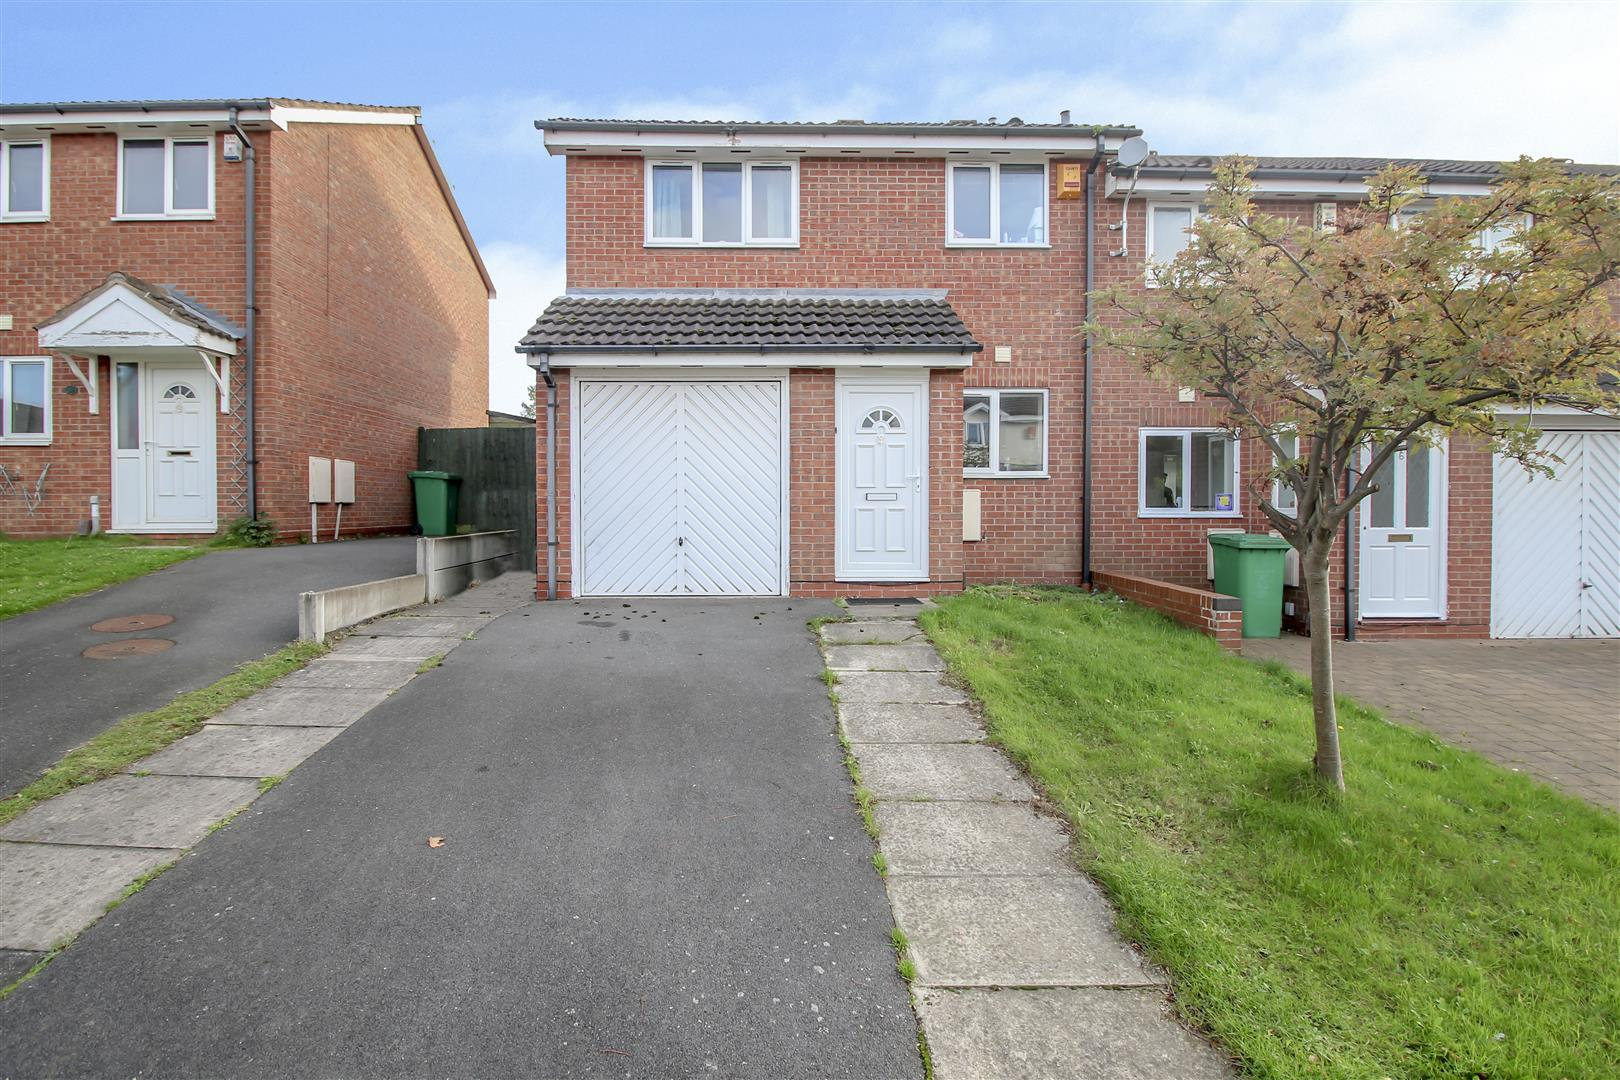 3 Bedrooms End Of Terrace House for sale in Heron Drive, Lenton, Nottingham